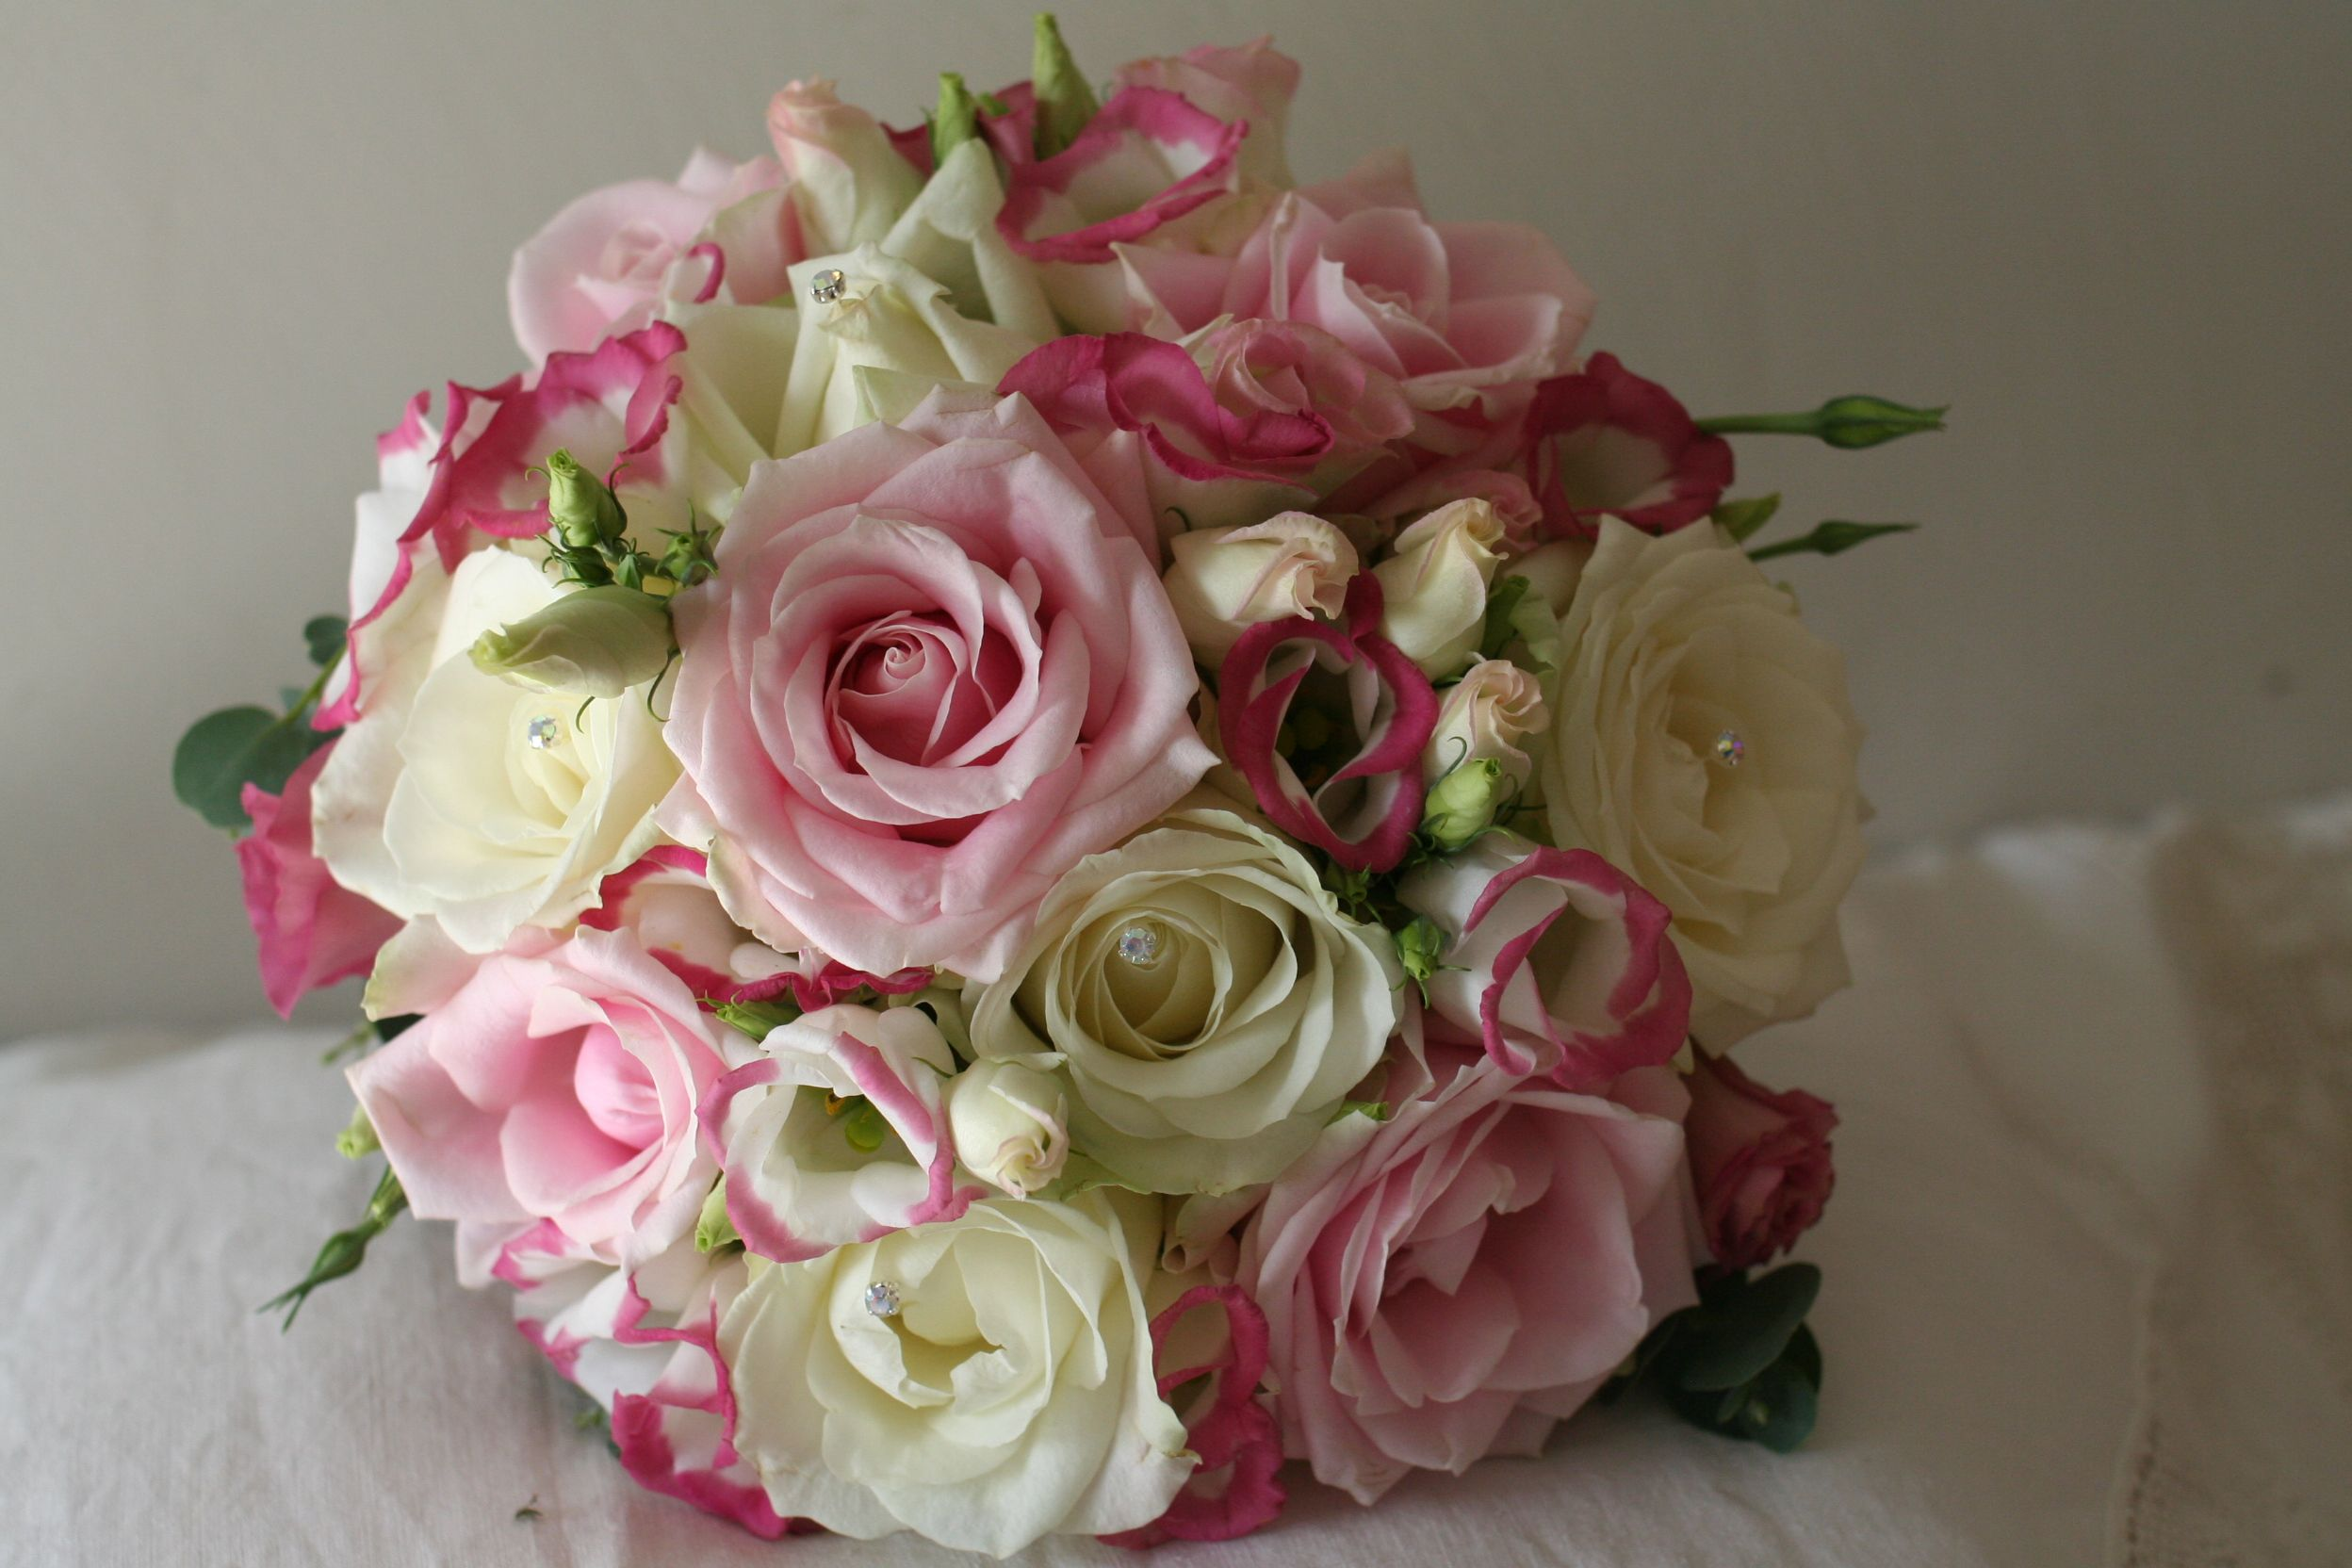 Roses and Lizianthus